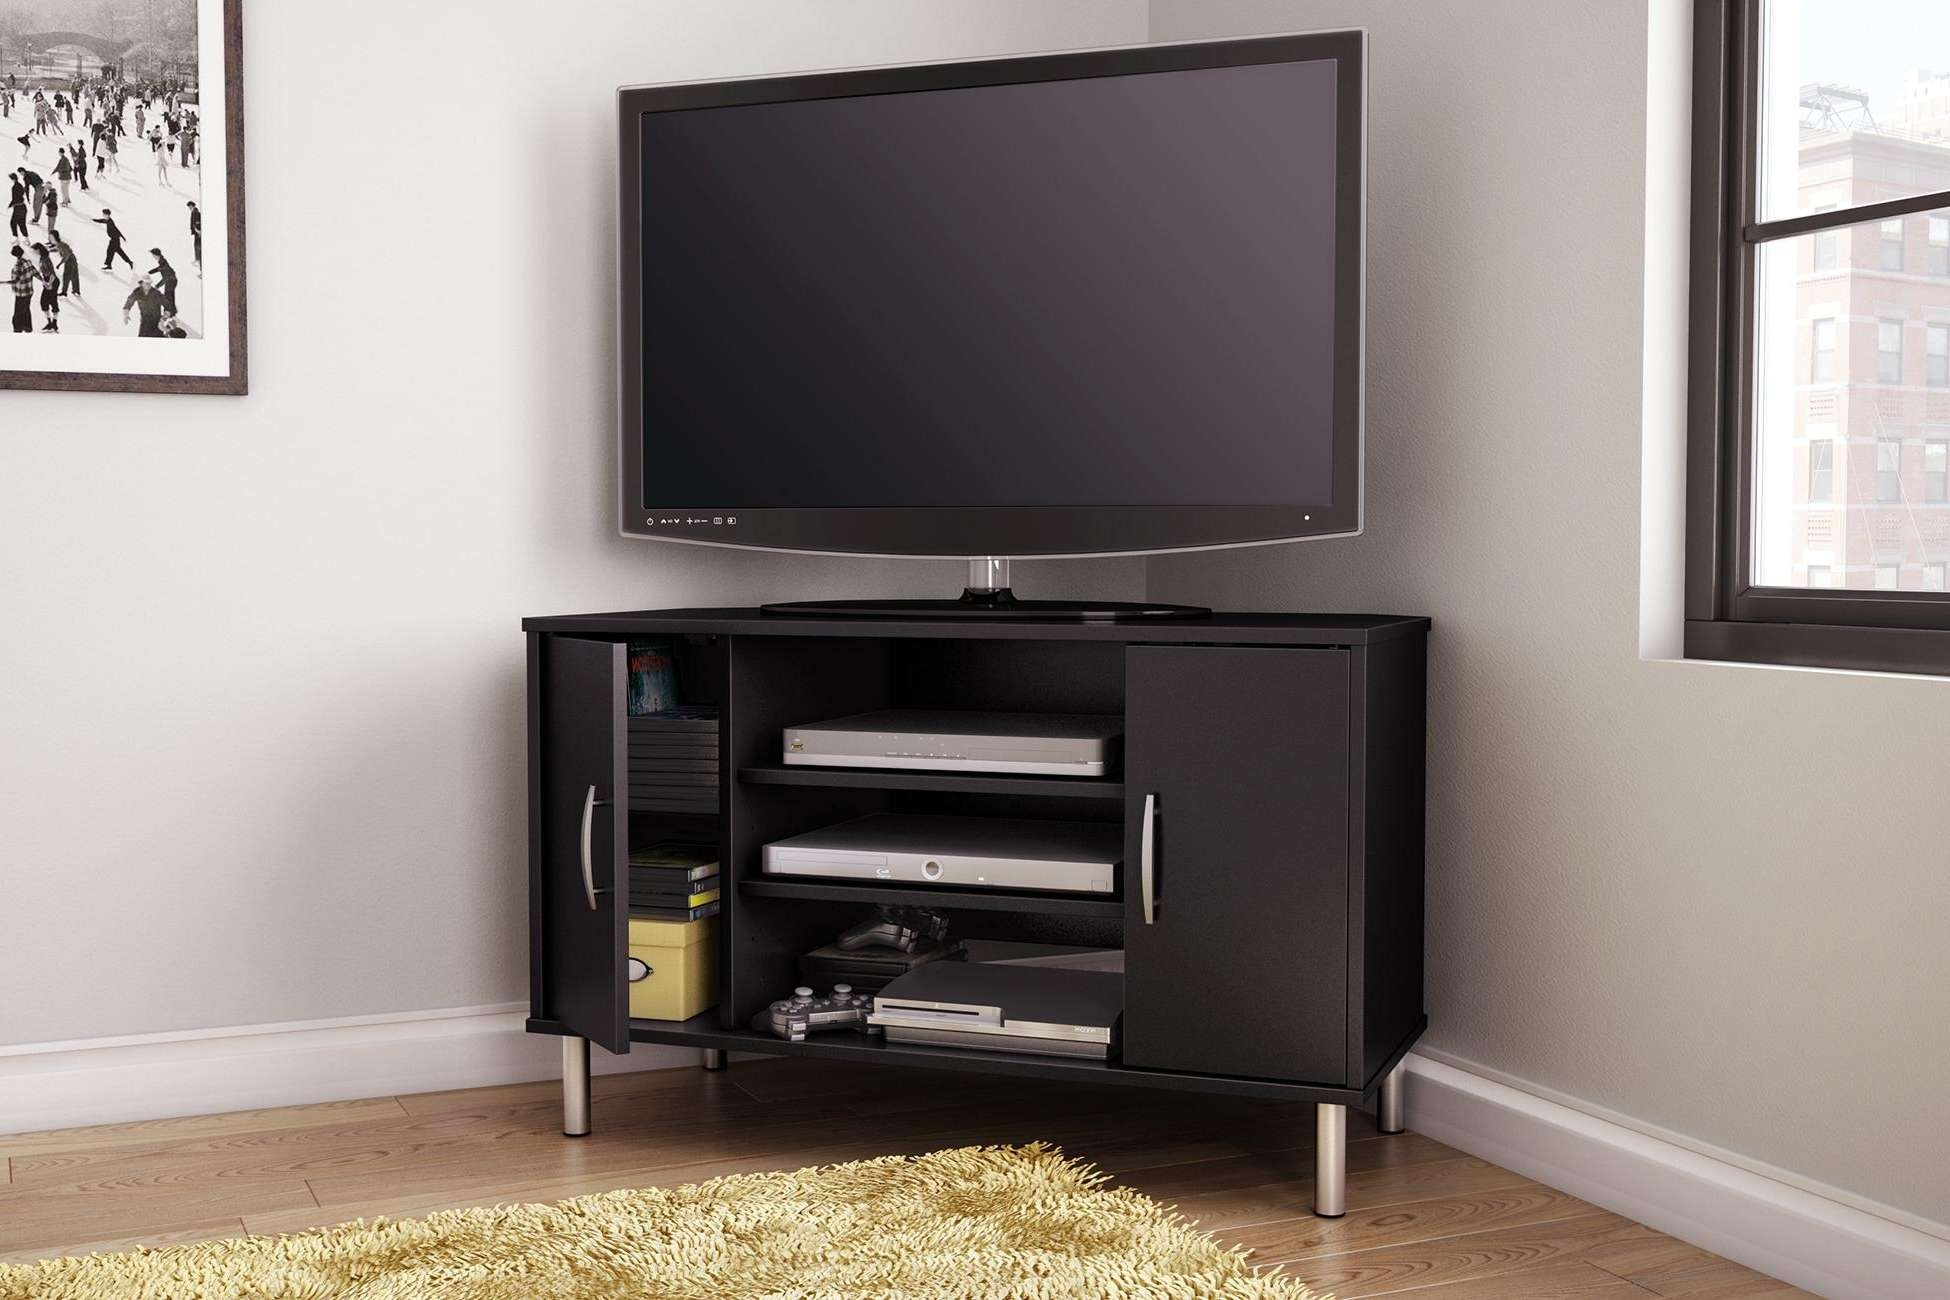 Corner Tv Cabinets For Flat Screen Tvs With Doors • Corner Cabinets Throughout Corner Tv Cabinets For Flat Screens With Doors (View 11 of 20)